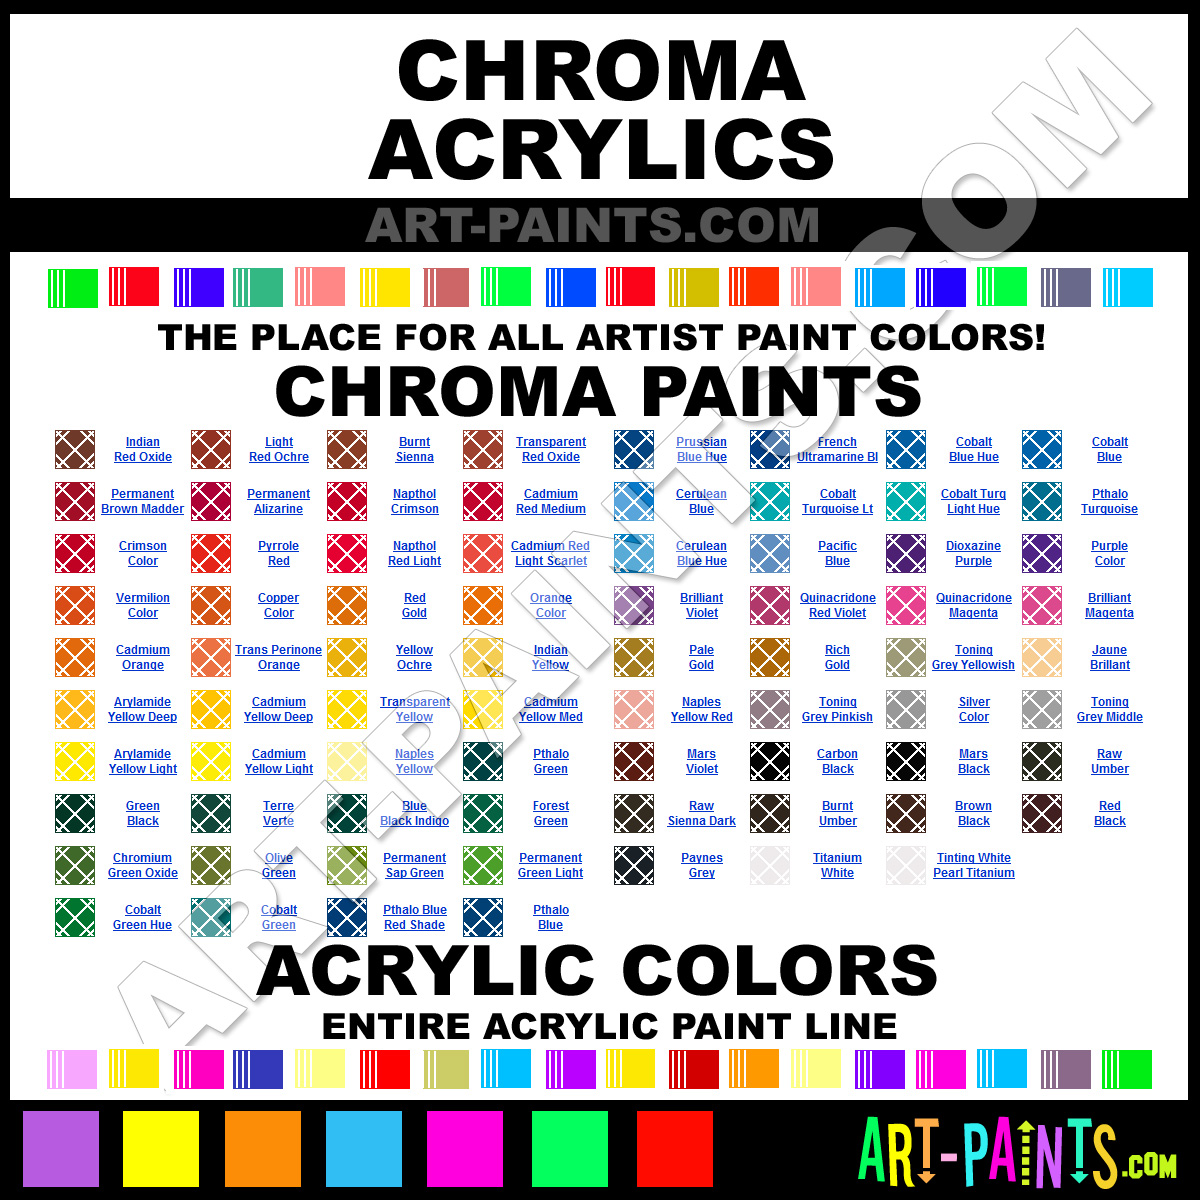 Chroma acrylic paint brands chroma paint brands acrylic for Chroma mural paint